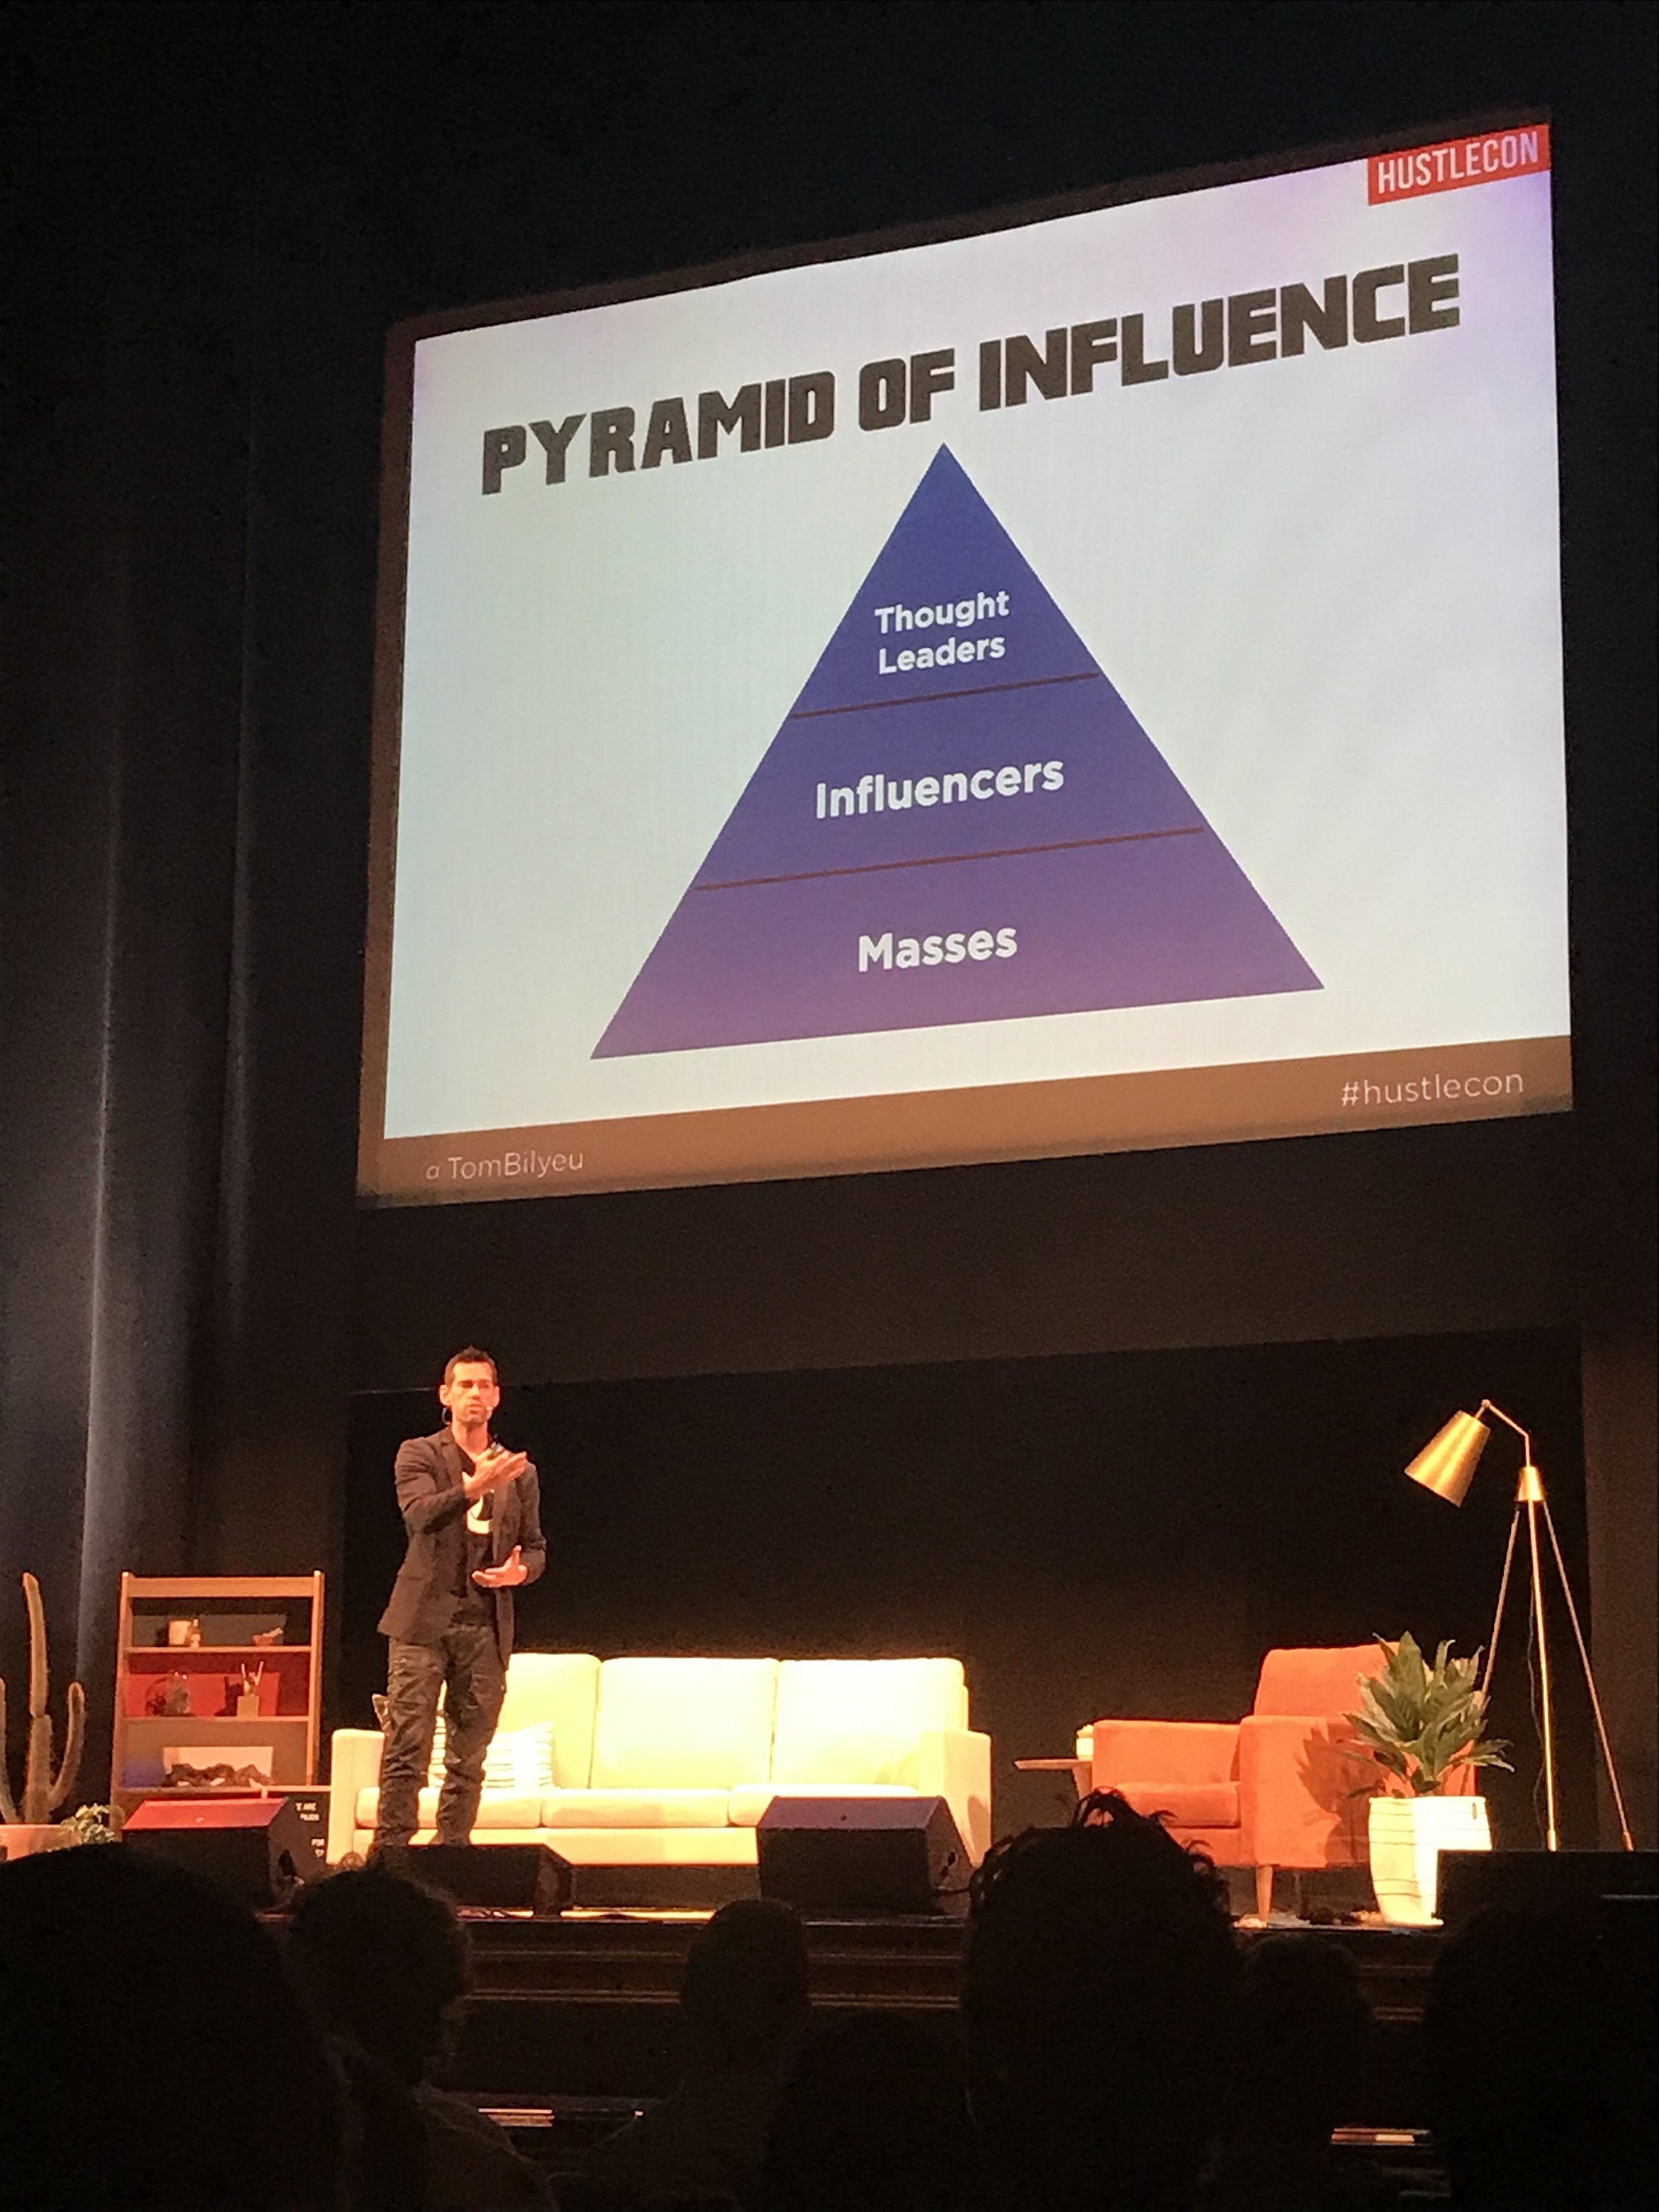 pyramid-of-influence.jpg